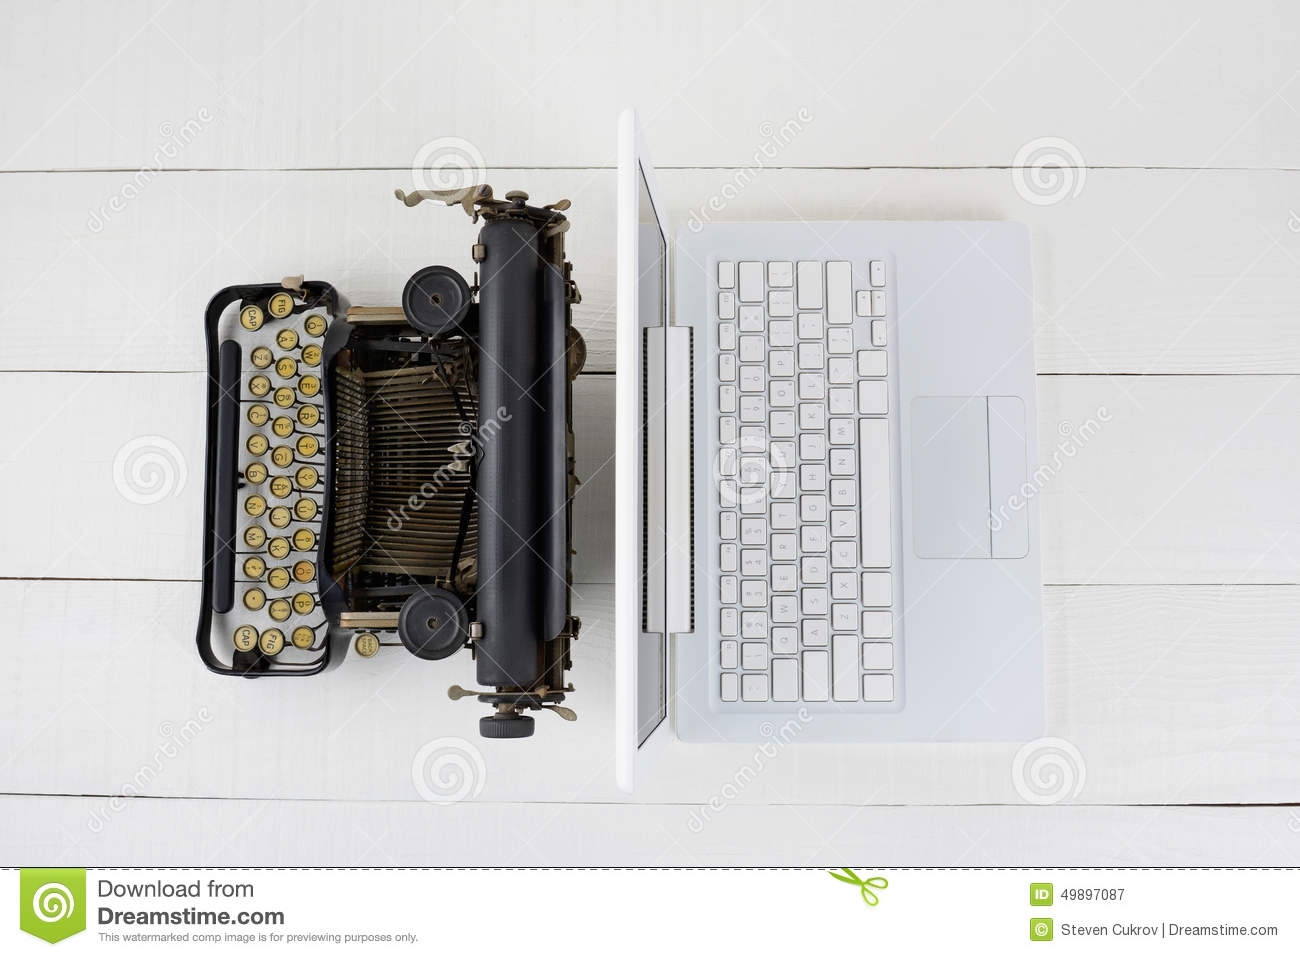 typewriter vs computer There is no cylindrical platen as on typebar typewriters the paper is hit against the shuttle by a hammer the the standard price for a typewriter was $100 -- several times the value of a good personal computer today, when we adjust for inflation there.